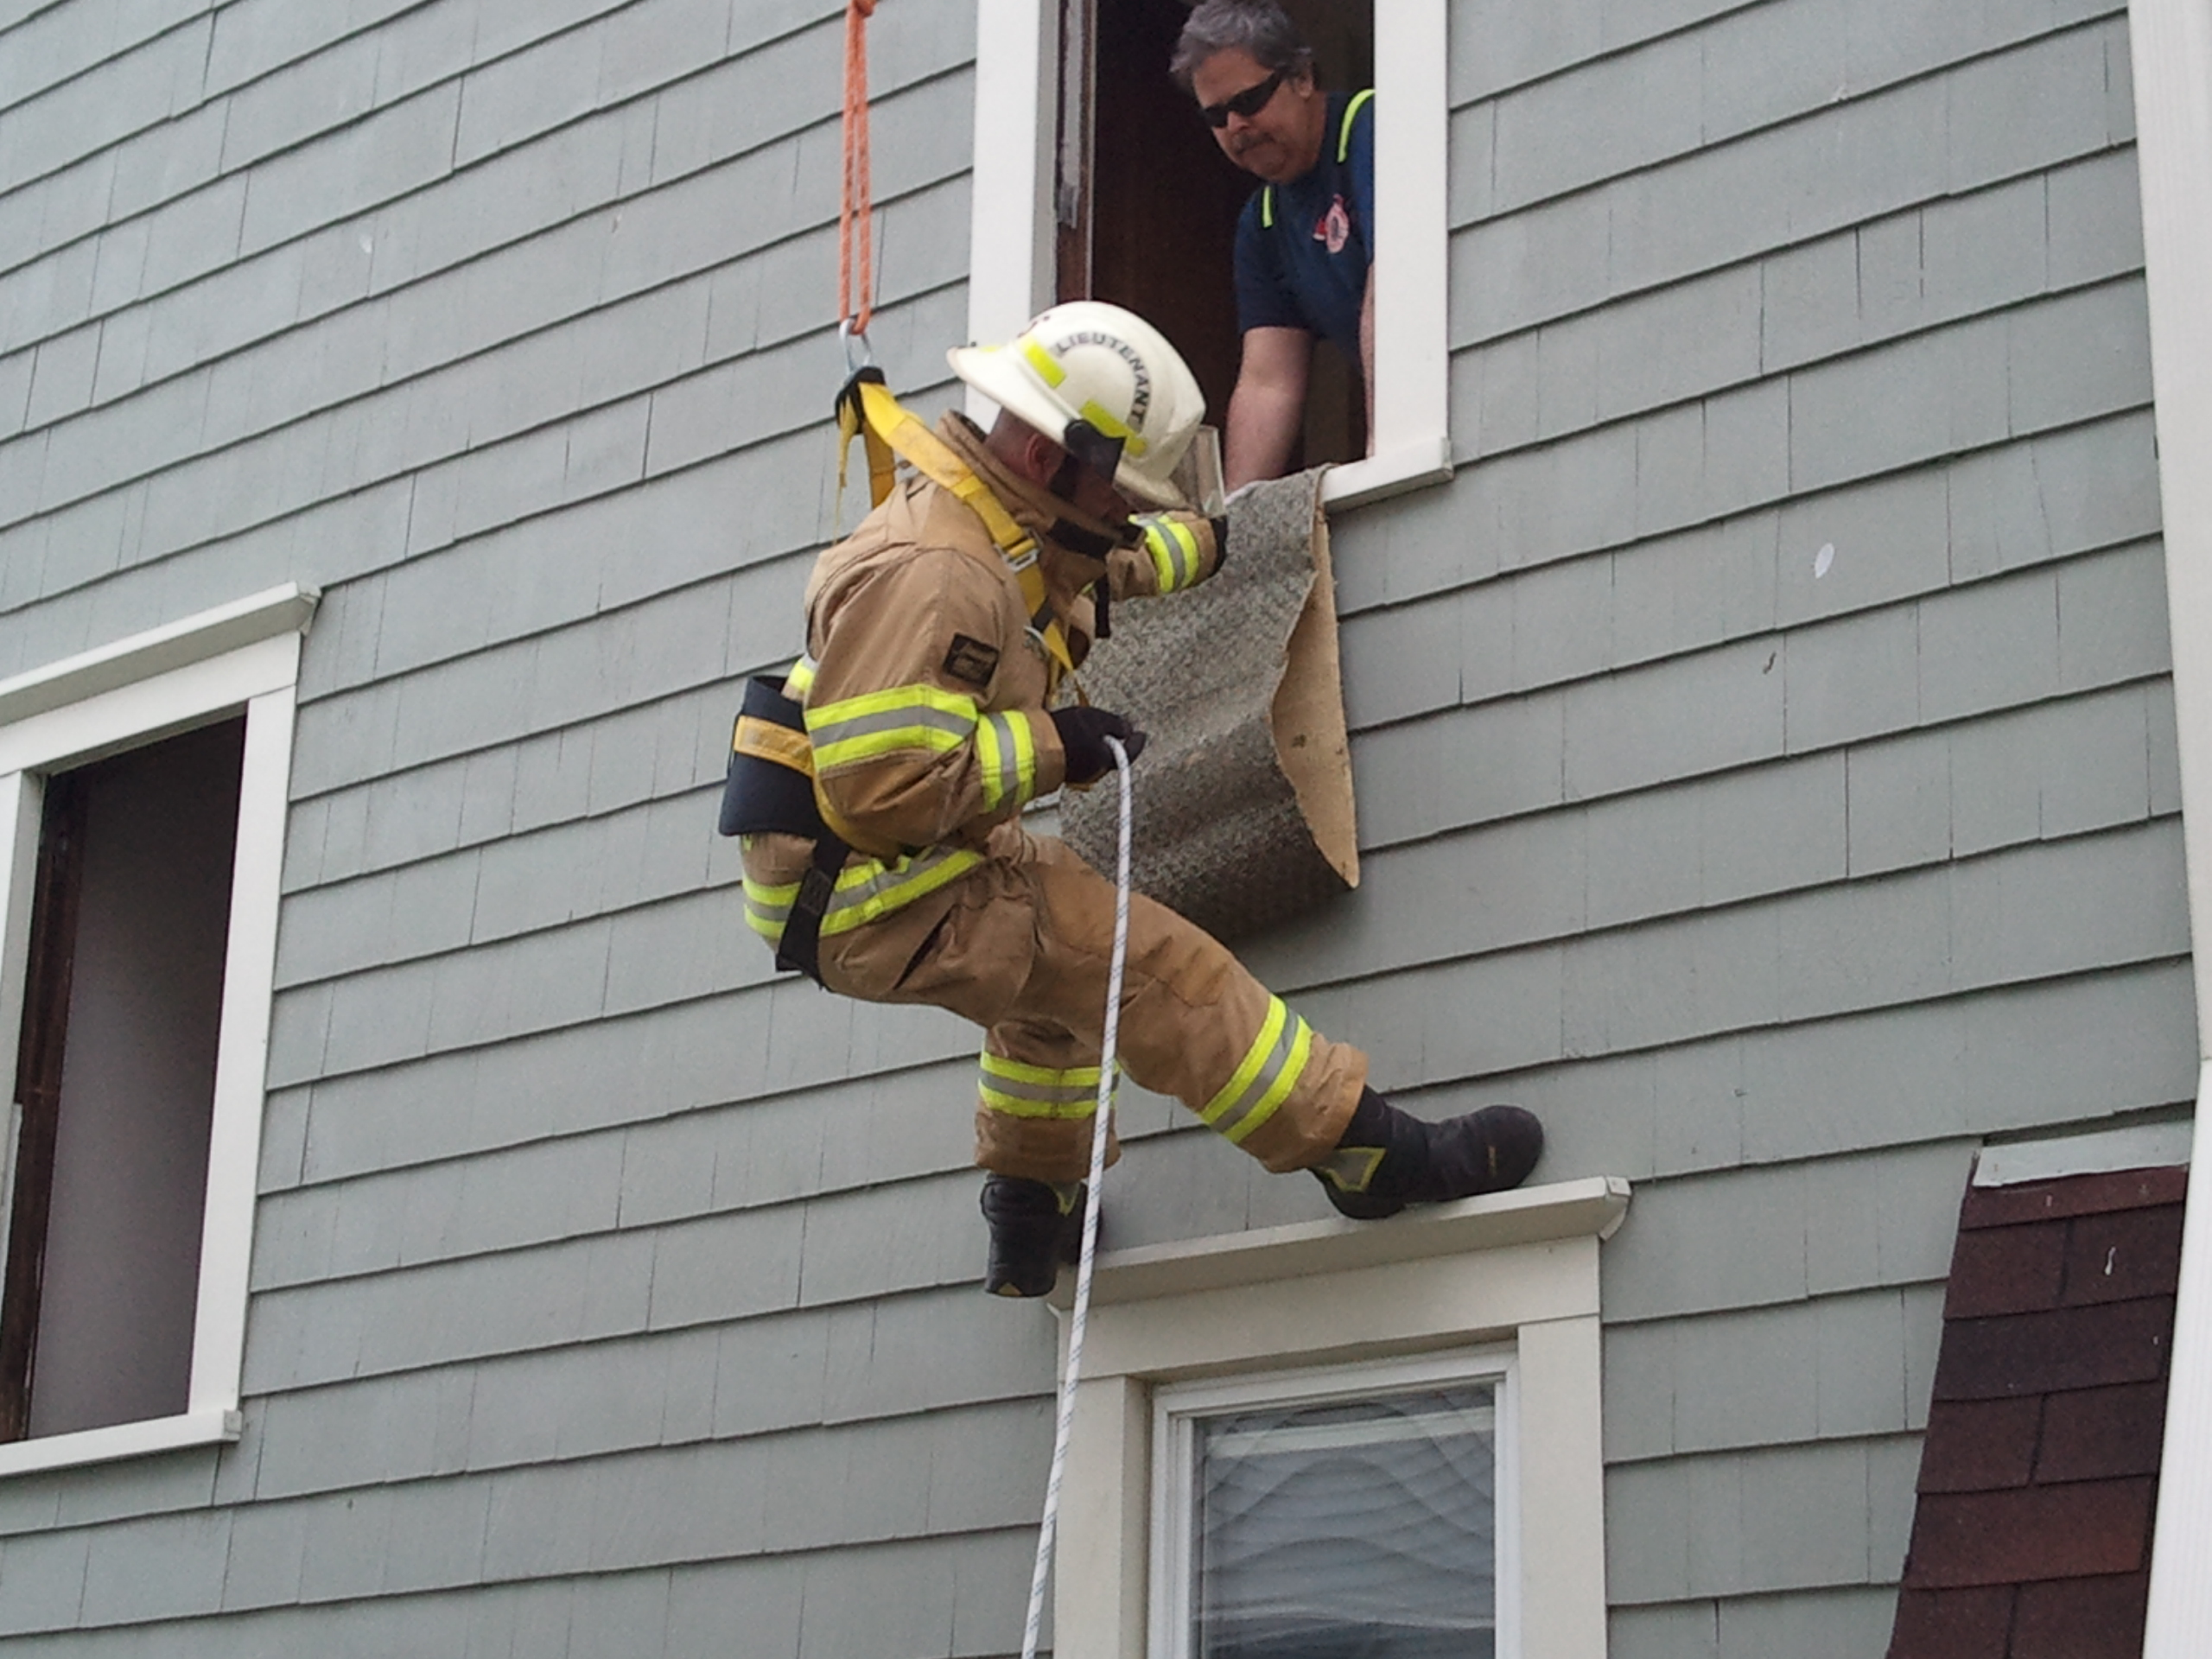 Rope training conducted at UMU housing.